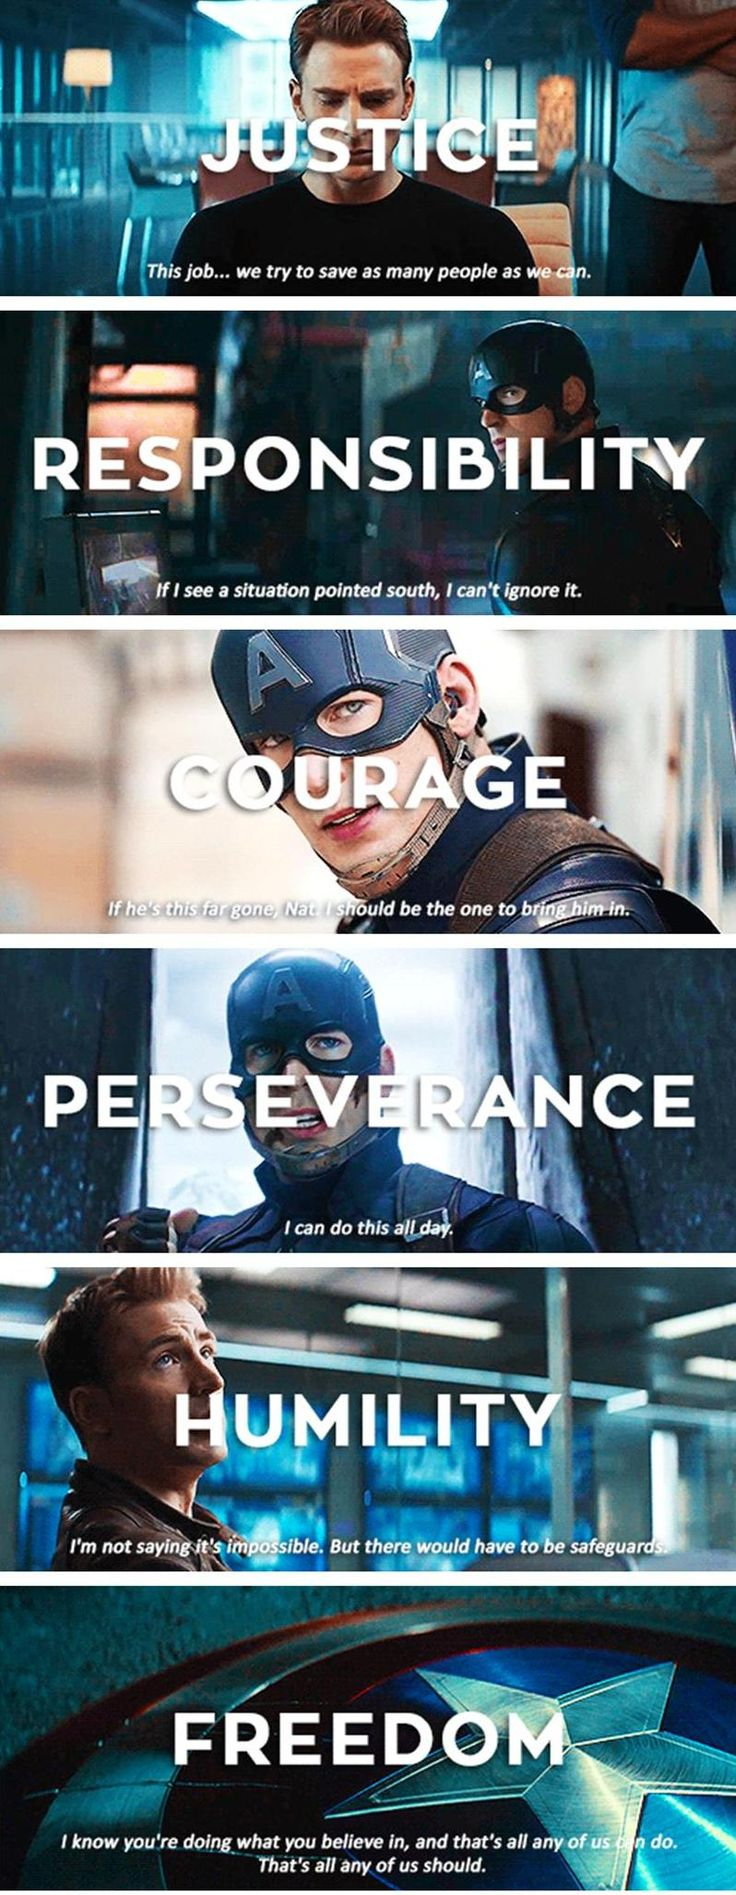 captain america quotes captain america wedding band The Values of Captain America